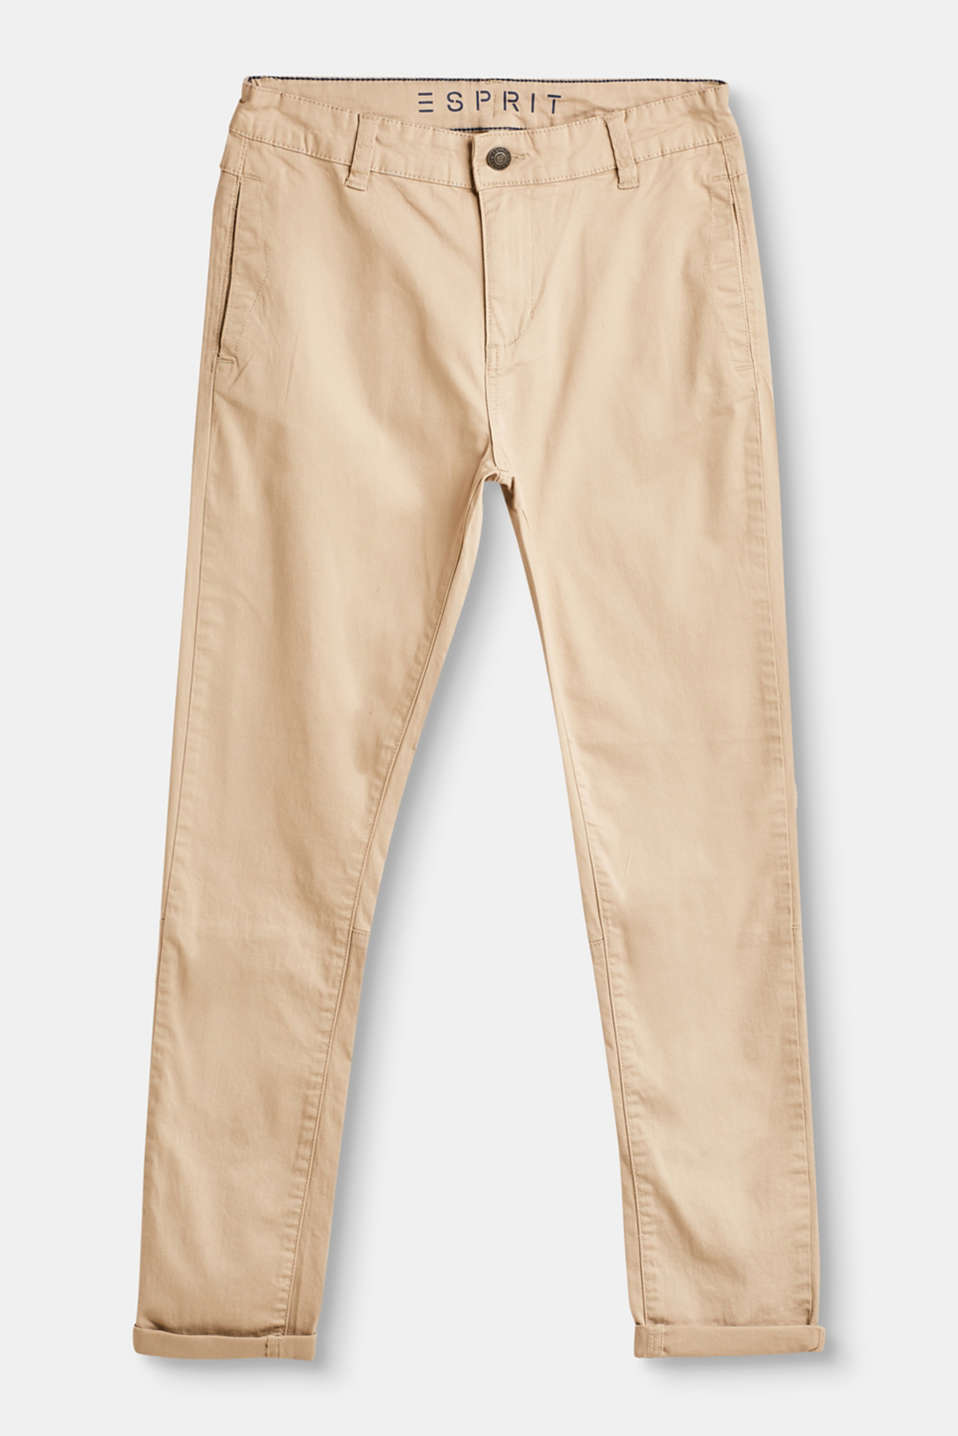 Esprit - Casual chinos with adjustable waistband, 100% cotton